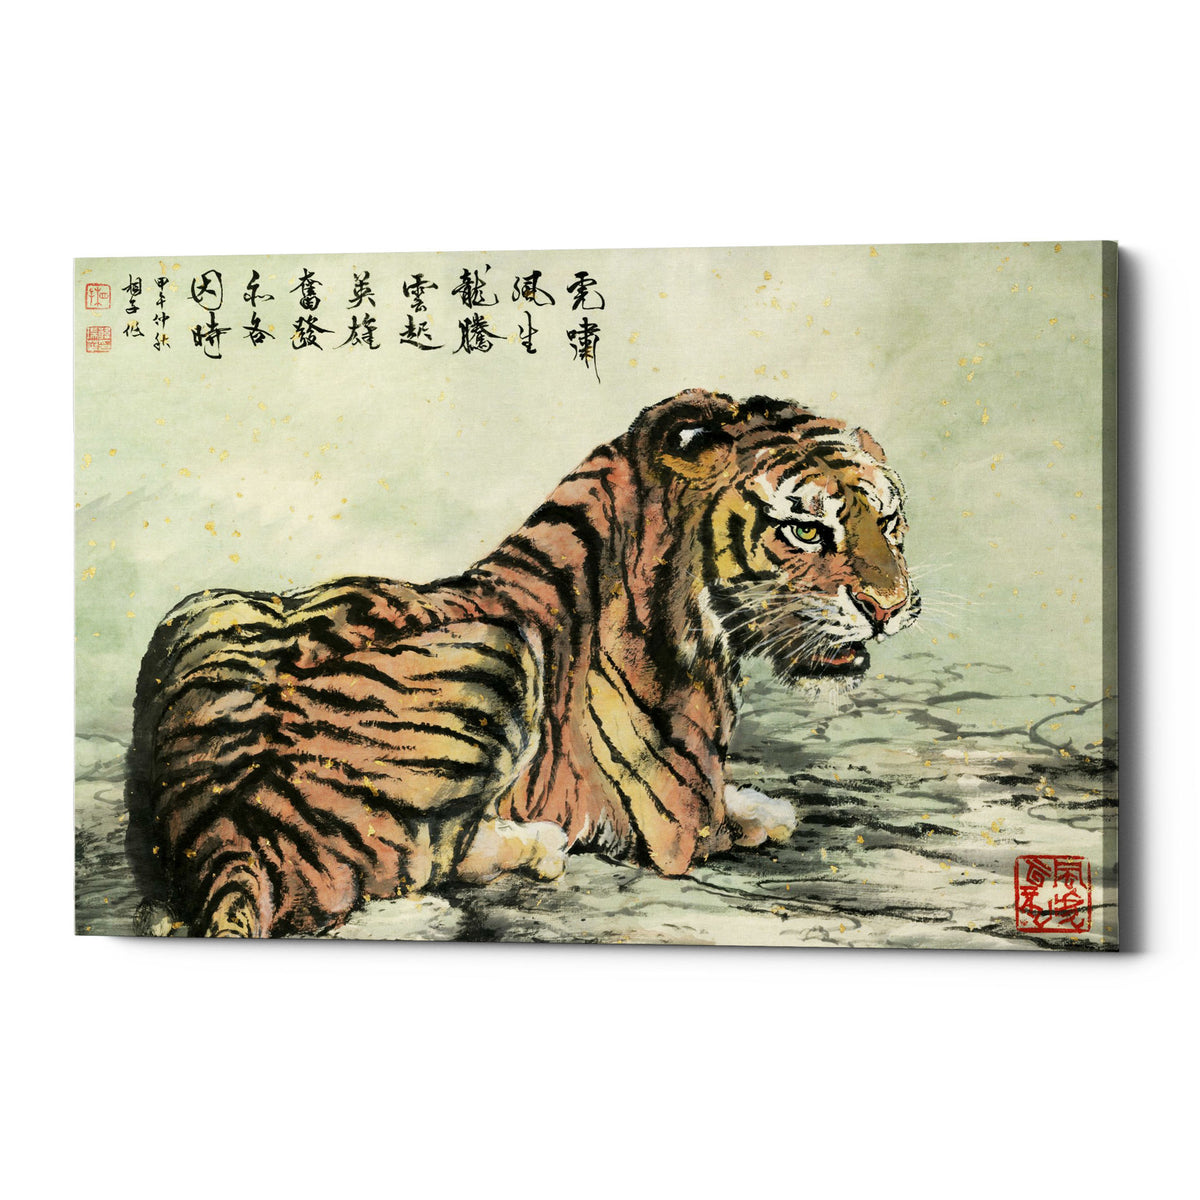 "Epic Graffiti ""Tiger Relaxing"" by River Han, Giclee Canvas Wall Art"